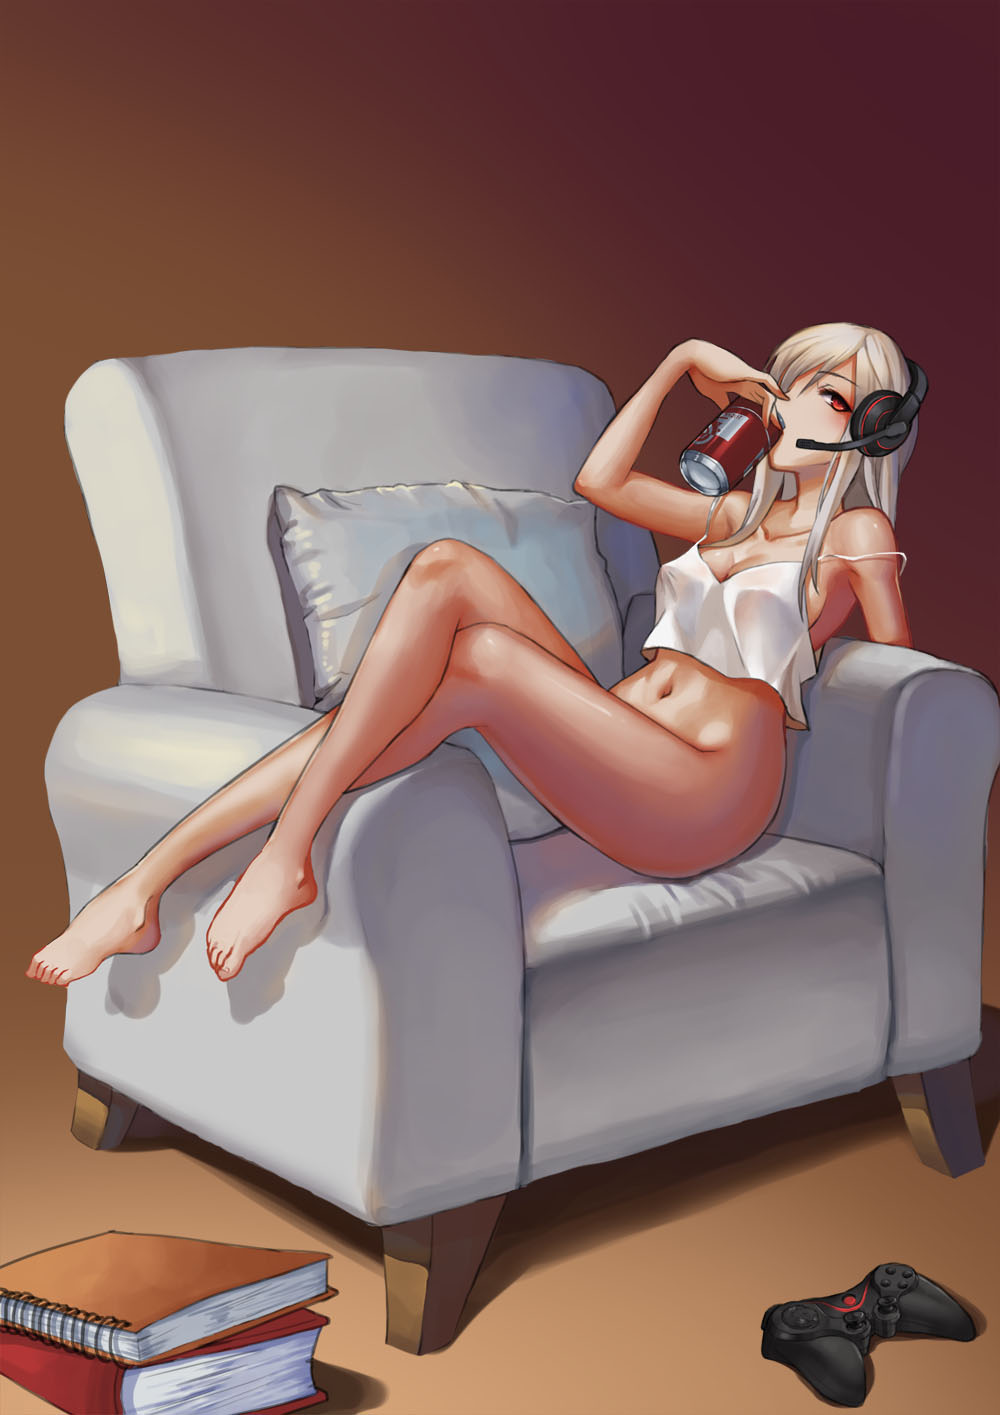 1girl armchair bangs bare_arms bare_legs bare_shoulders barefoot book book_stack bottomless breasts brown_background camisole can chair cleavage collarbone controller covered_nipples crop_top crop_top_overhang crossed_legs cushion drinking error eyelashes from_side full_body game_controller hand_up headphones headset highres holding knees_up leaning_back long_hair looking_at_viewer medium_breasts microphone navel notebook original pillow revision shade shiny shiny_skin shiraha_(pixiv10239953) sitting sitting_sideways soda_can solo spaghetti_strap stomach strap_slip tan white_hair